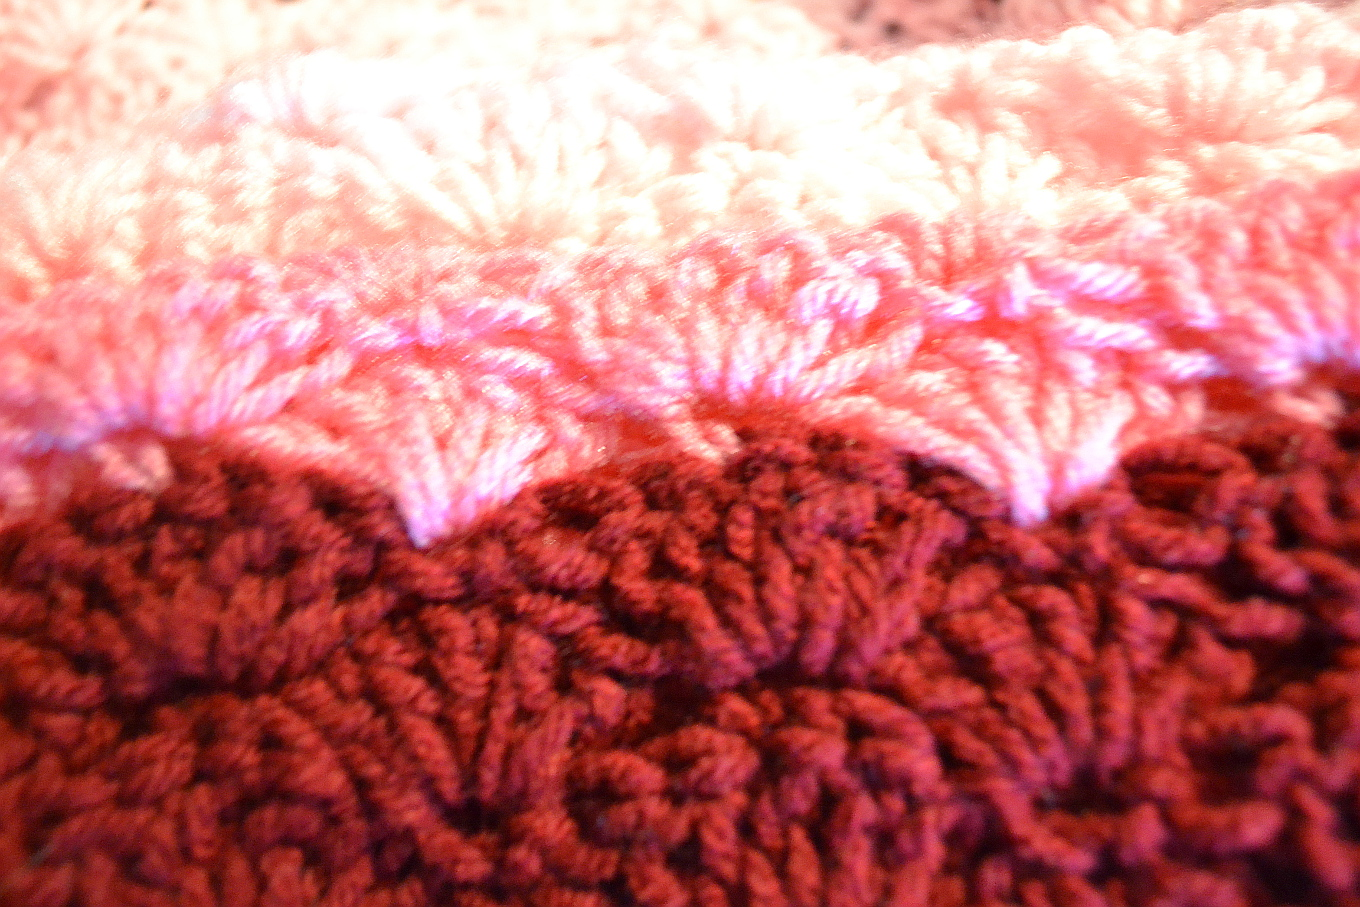 Crochet Stitches Shell Instructions : Shell Stitch